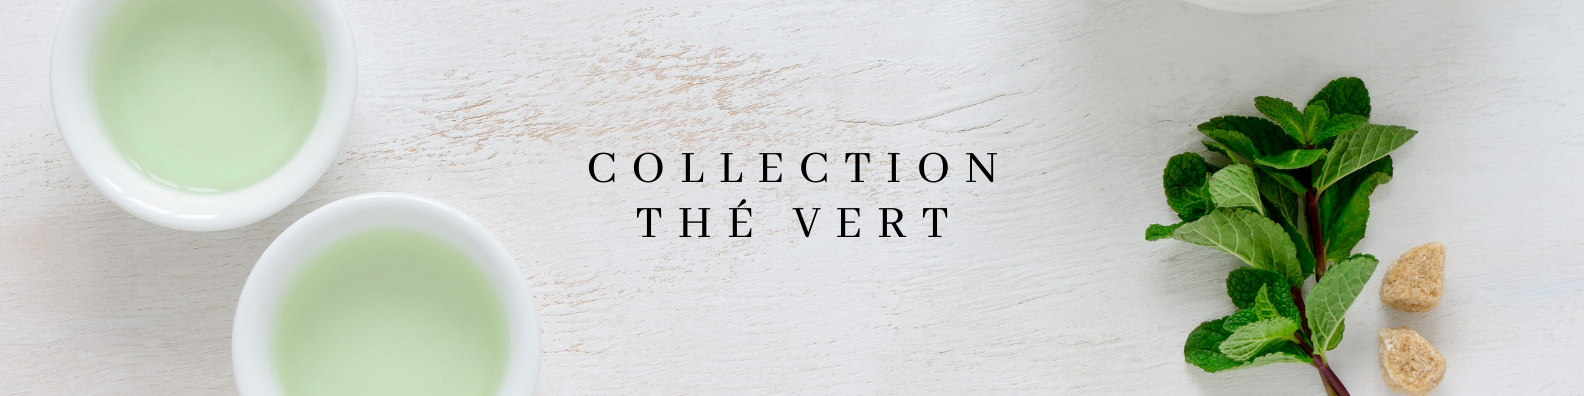 Collection_The_vert.png